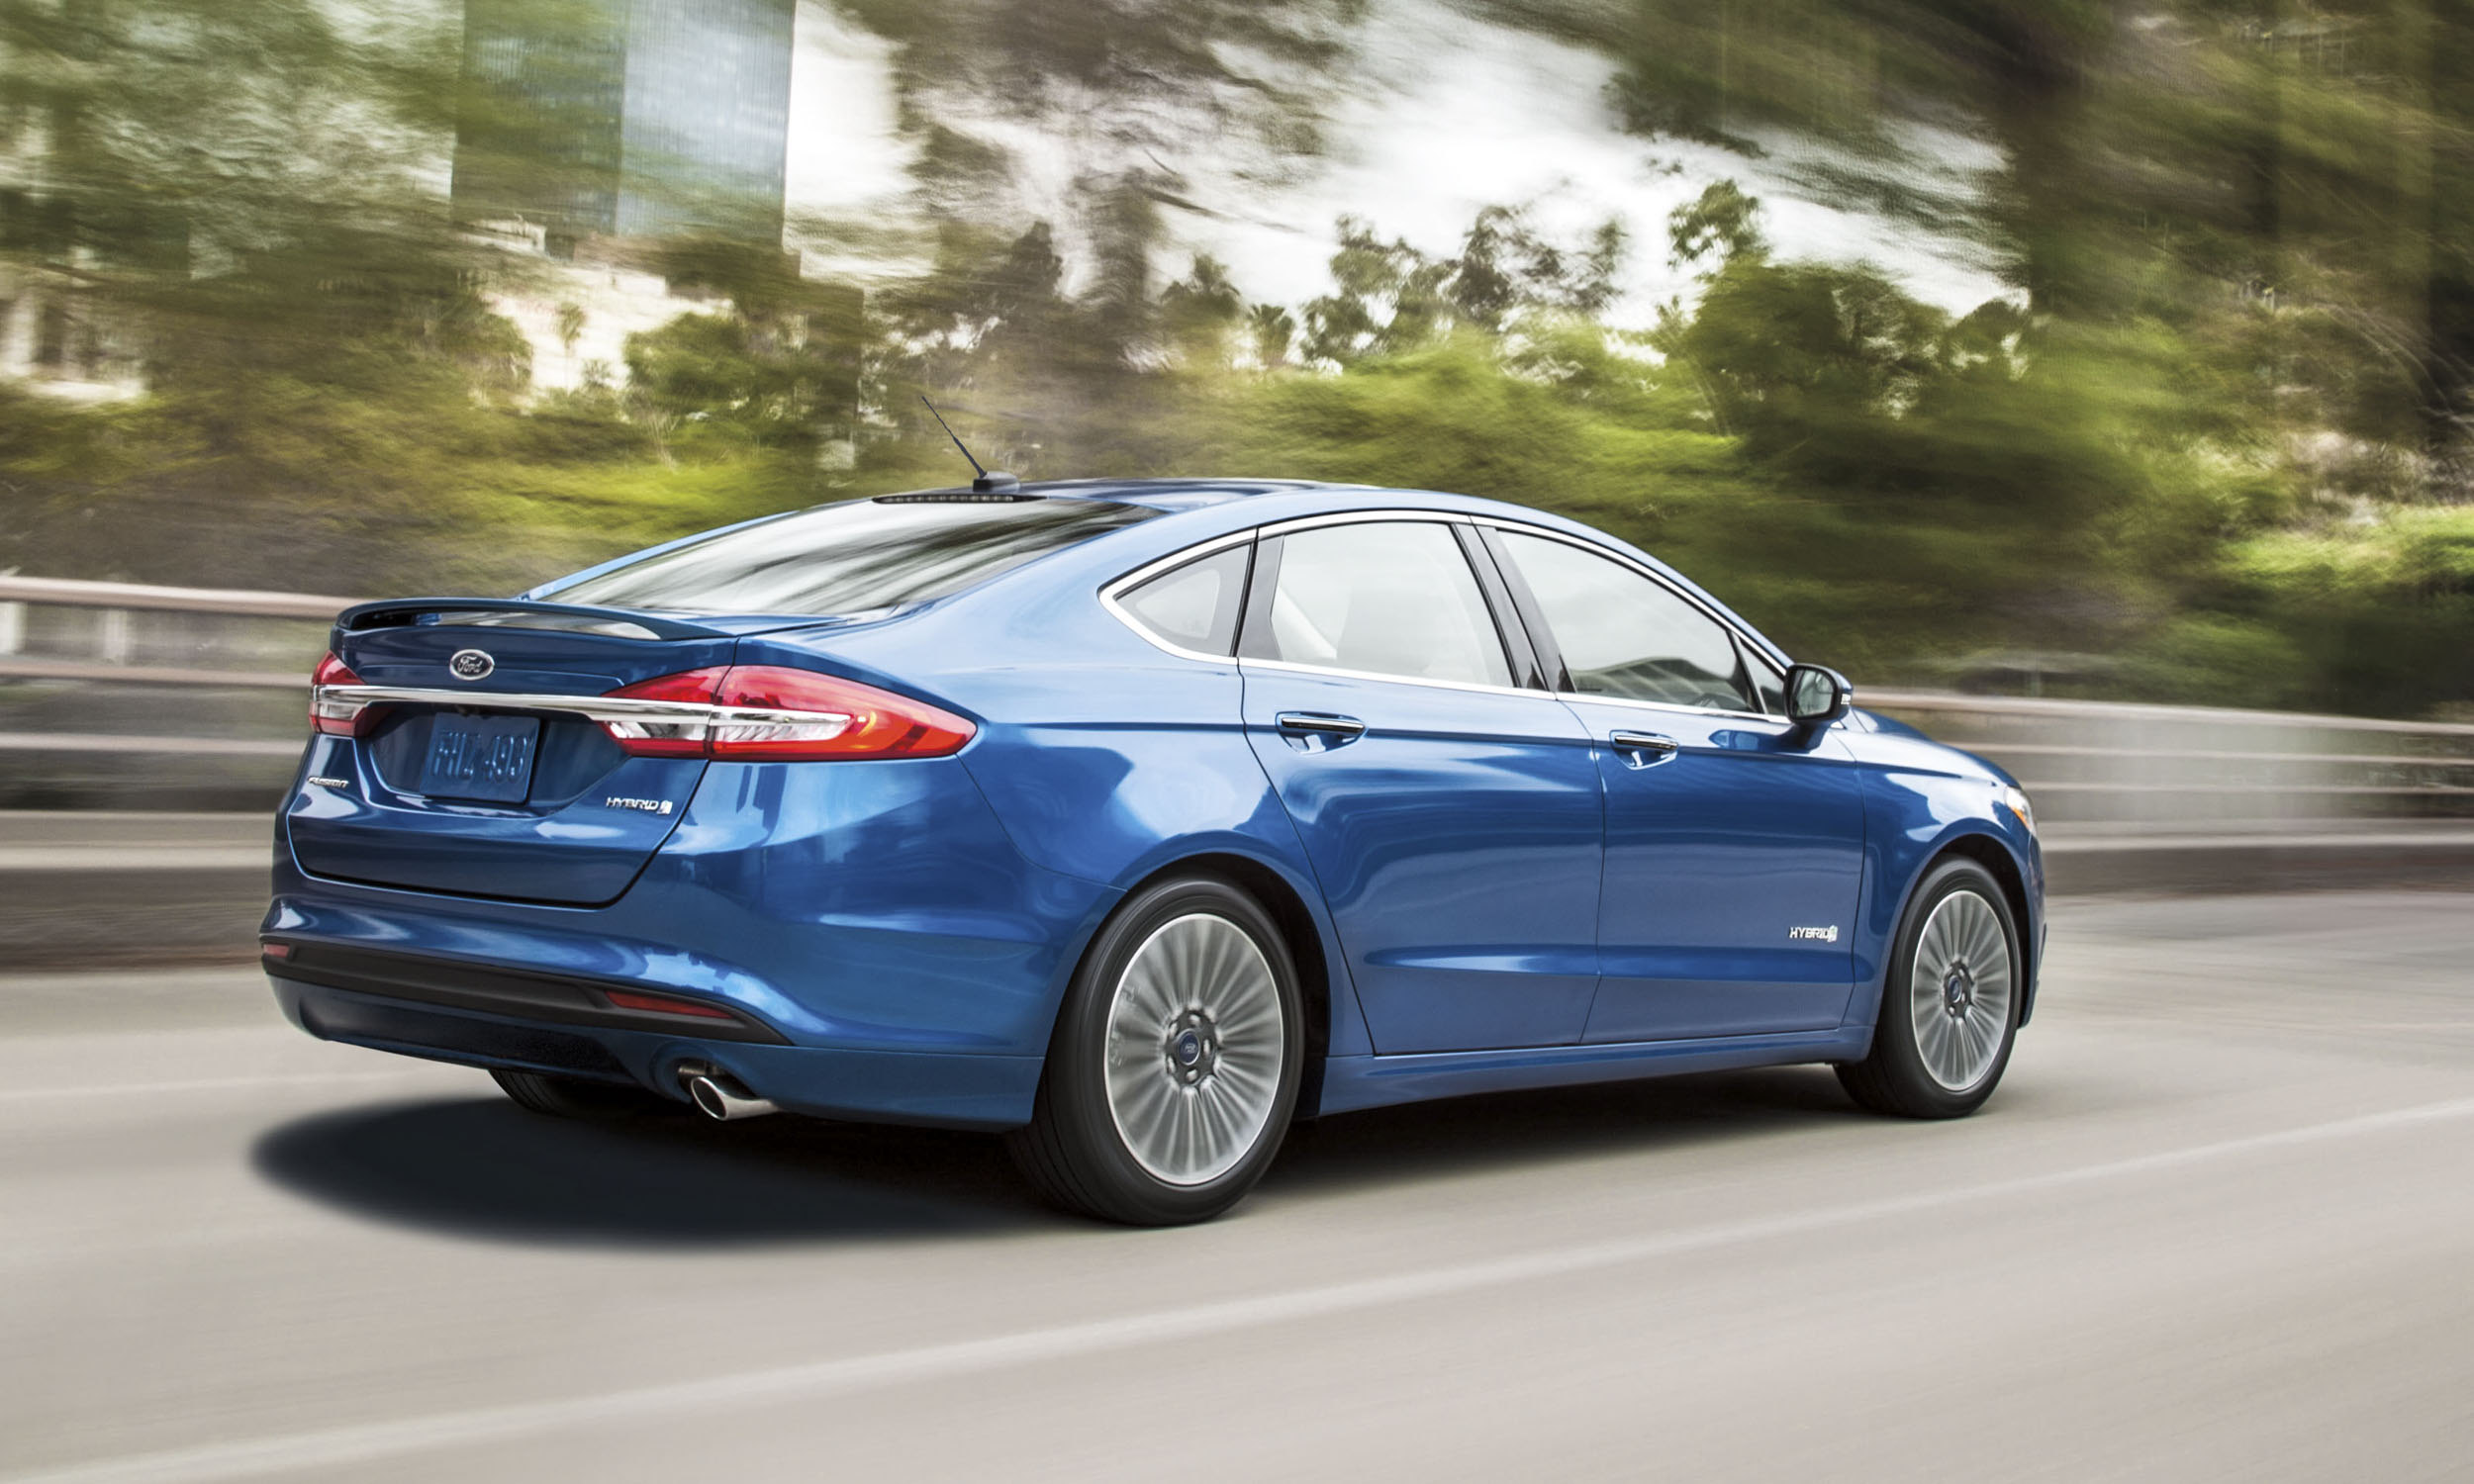 2017 ford fusion first drive review autonxt. Black Bedroom Furniture Sets. Home Design Ideas